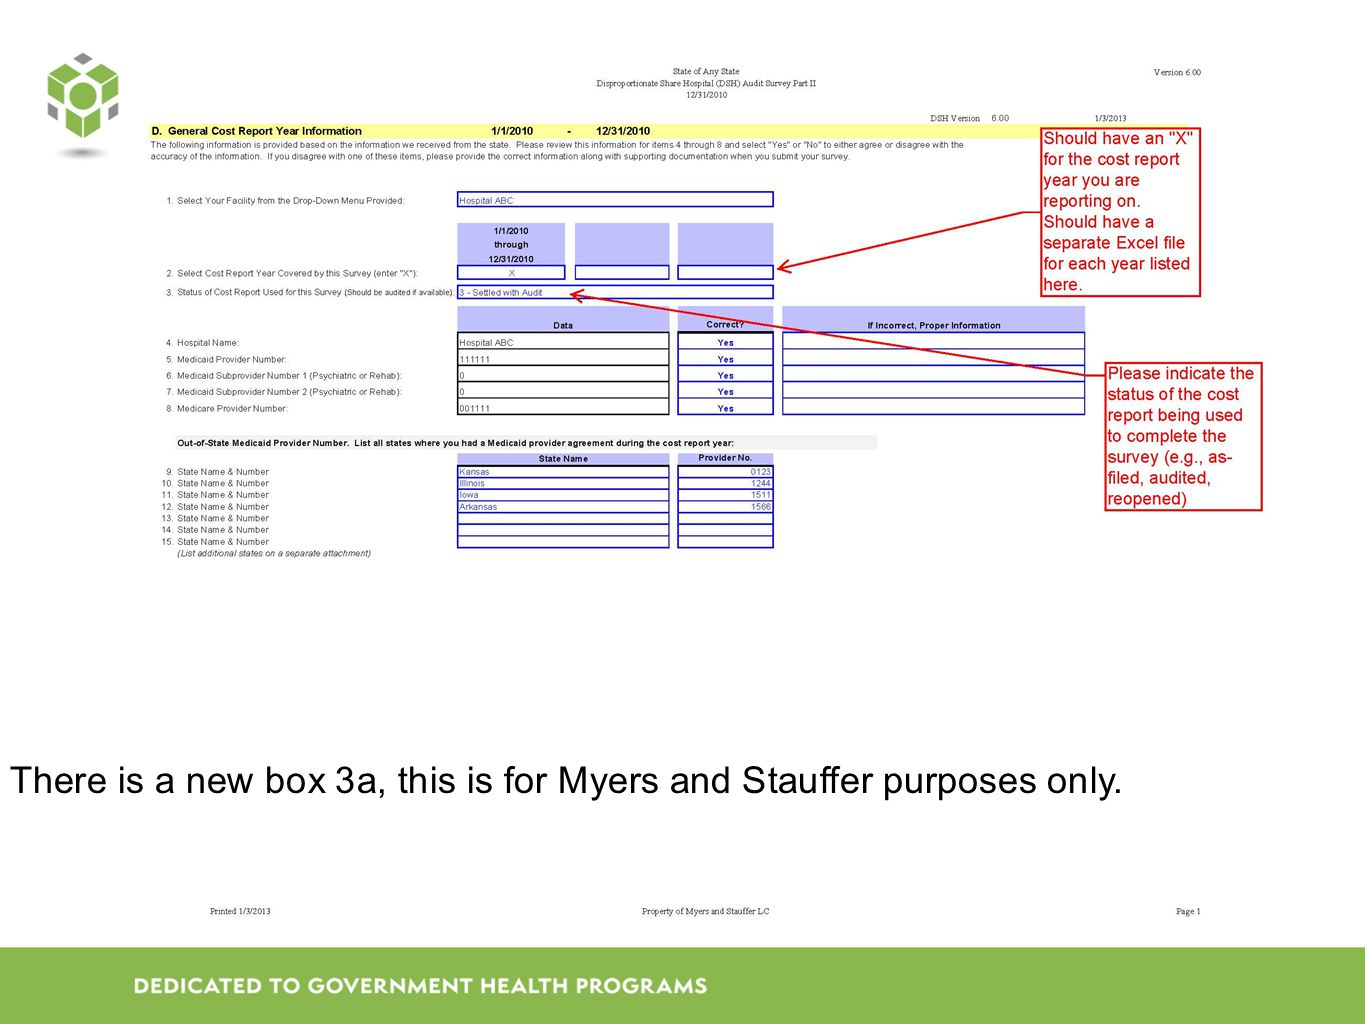 There is a new box 3a, this is for Myers and Stauffer purposes only.